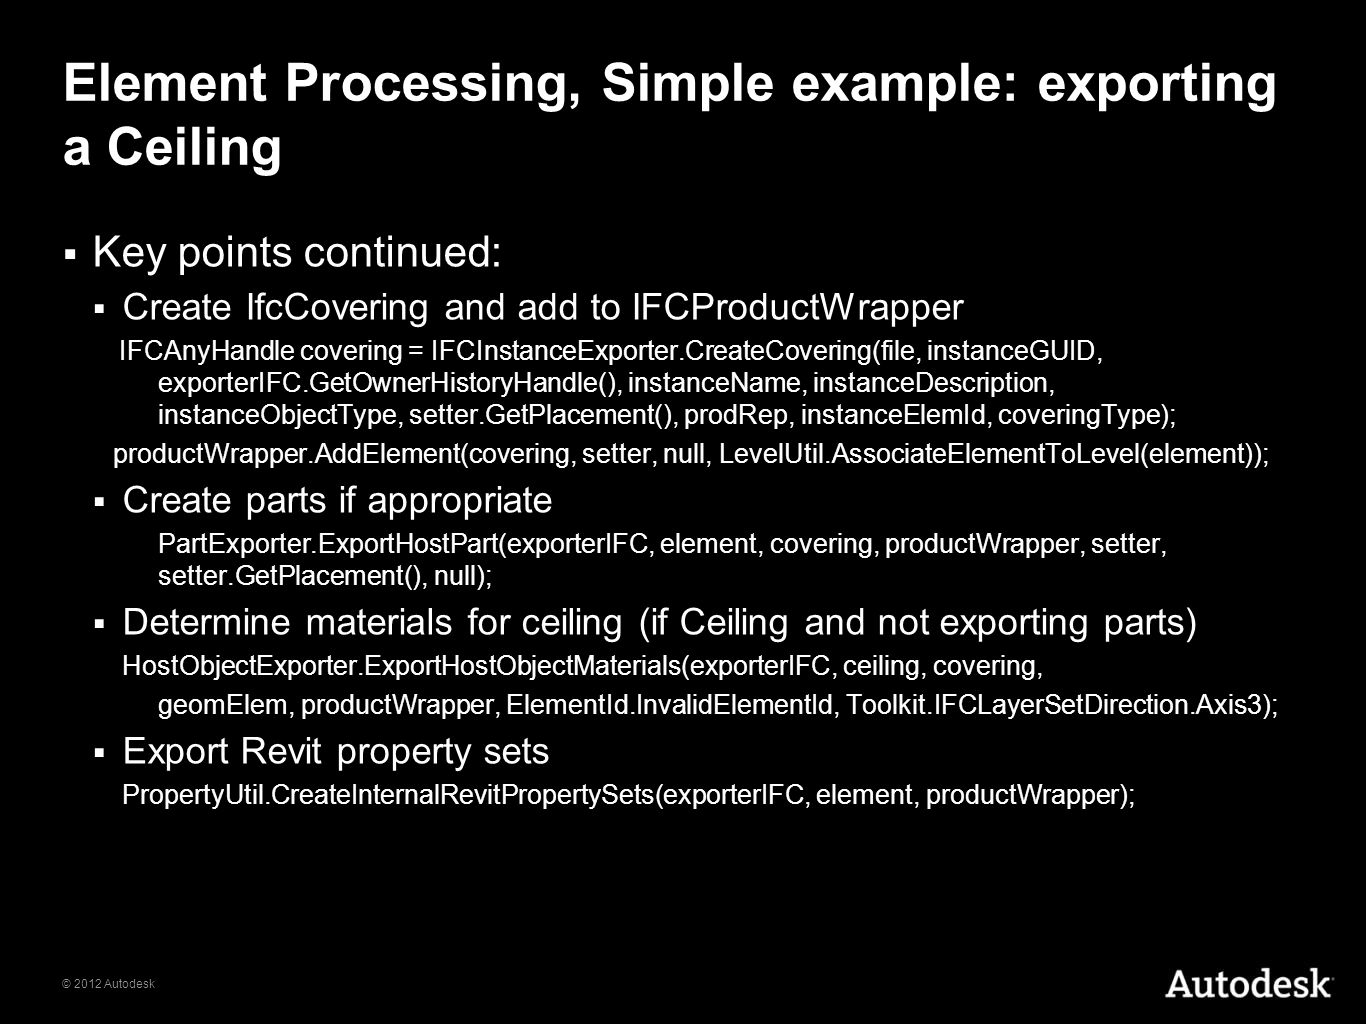 Element Processing, Simple example: exporting a Ceiling